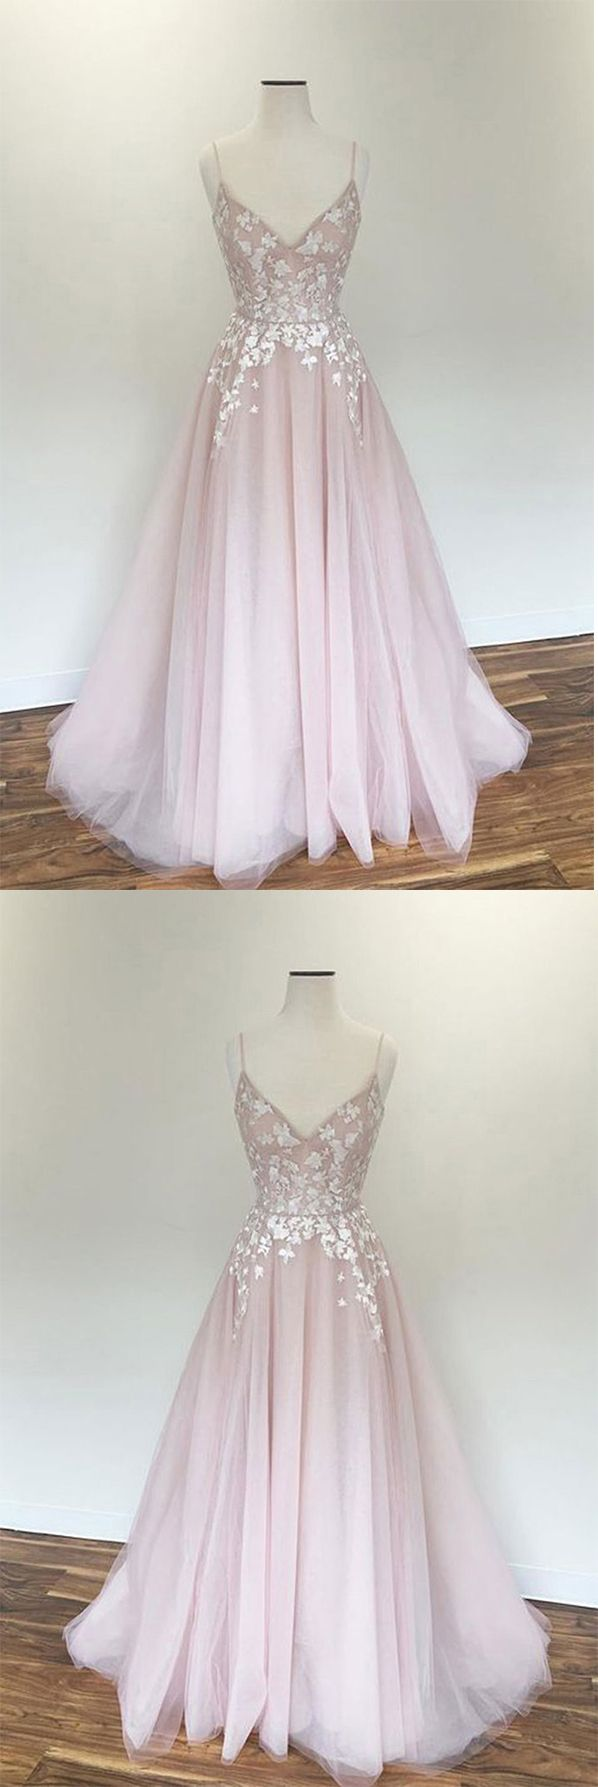 61d01d26be Light Pink V Neck Tulle Long Spaghetti Straps Appliques Prom Dress OKB57 # pink #straps #vneck #aline #tulle #lace #prom #okdresses